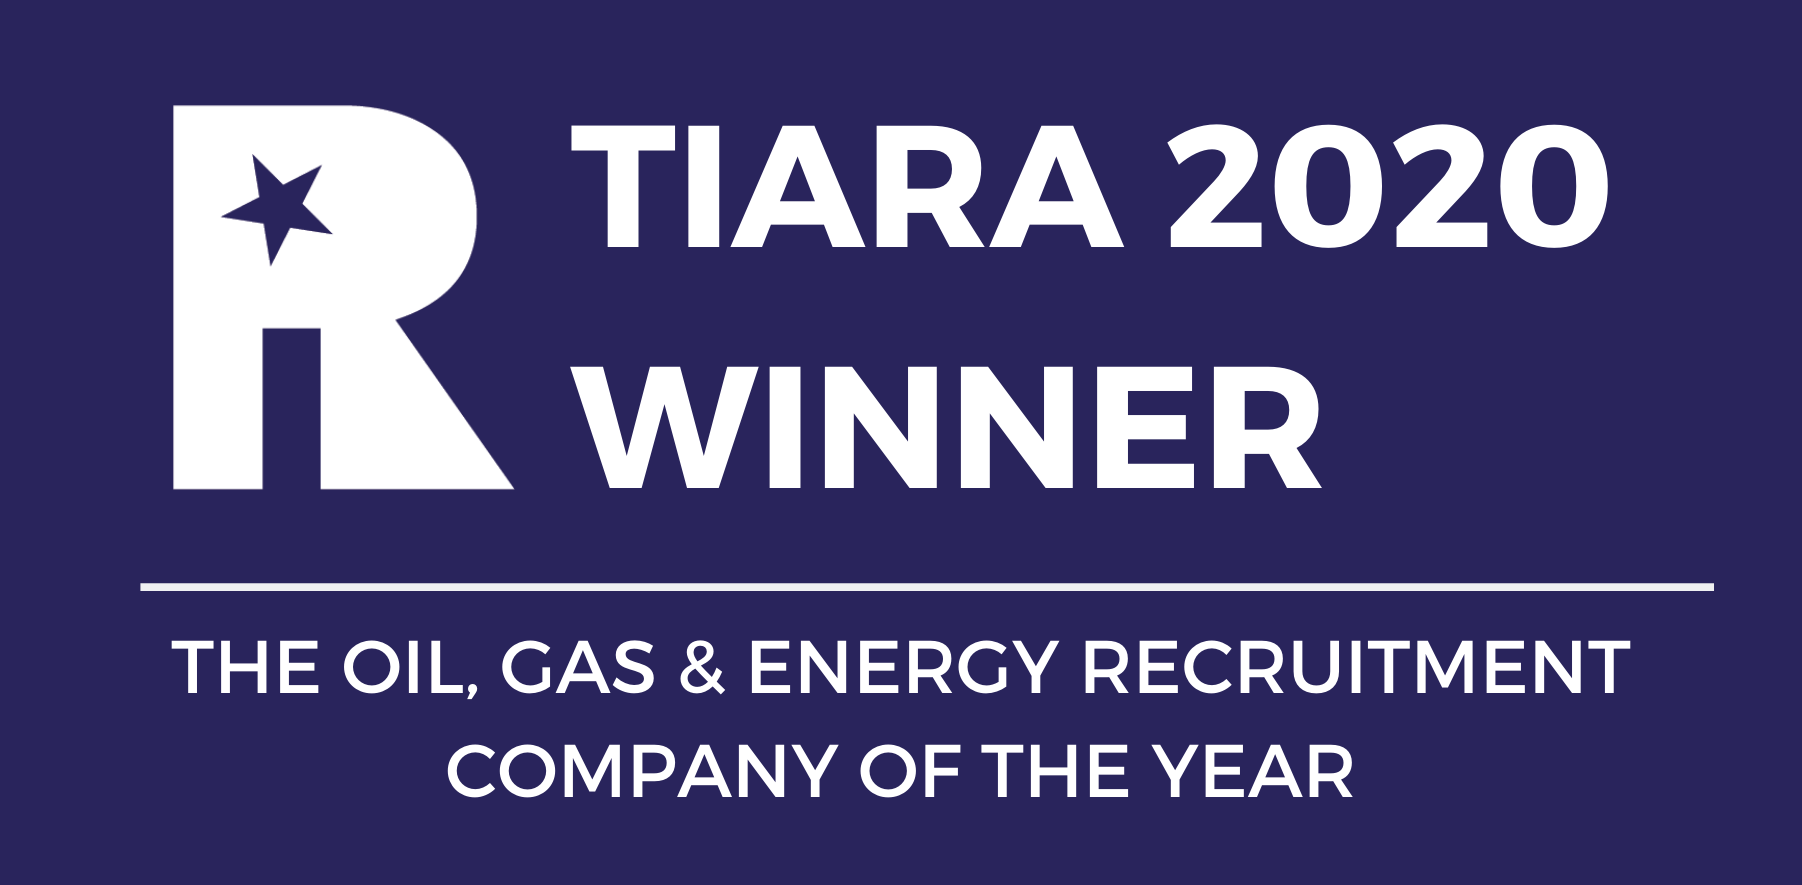 Airswift winners of Oil, Gas & Energy Recruitment Company of the Year - TIARA awards - Middle East